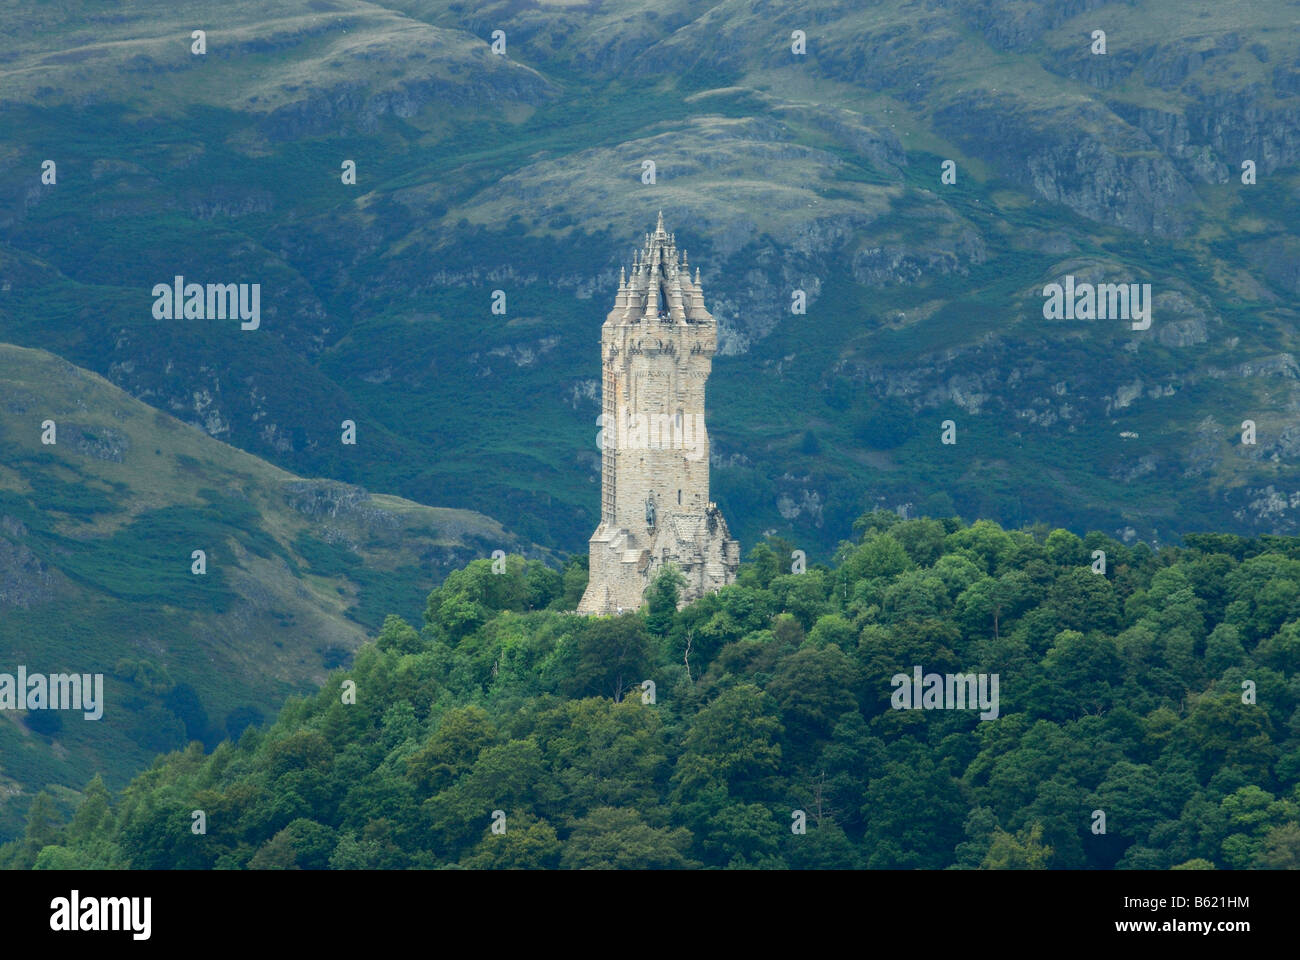 Wallace Monument near Stirling, Scotland, Great Britain, Europe - Stock Image